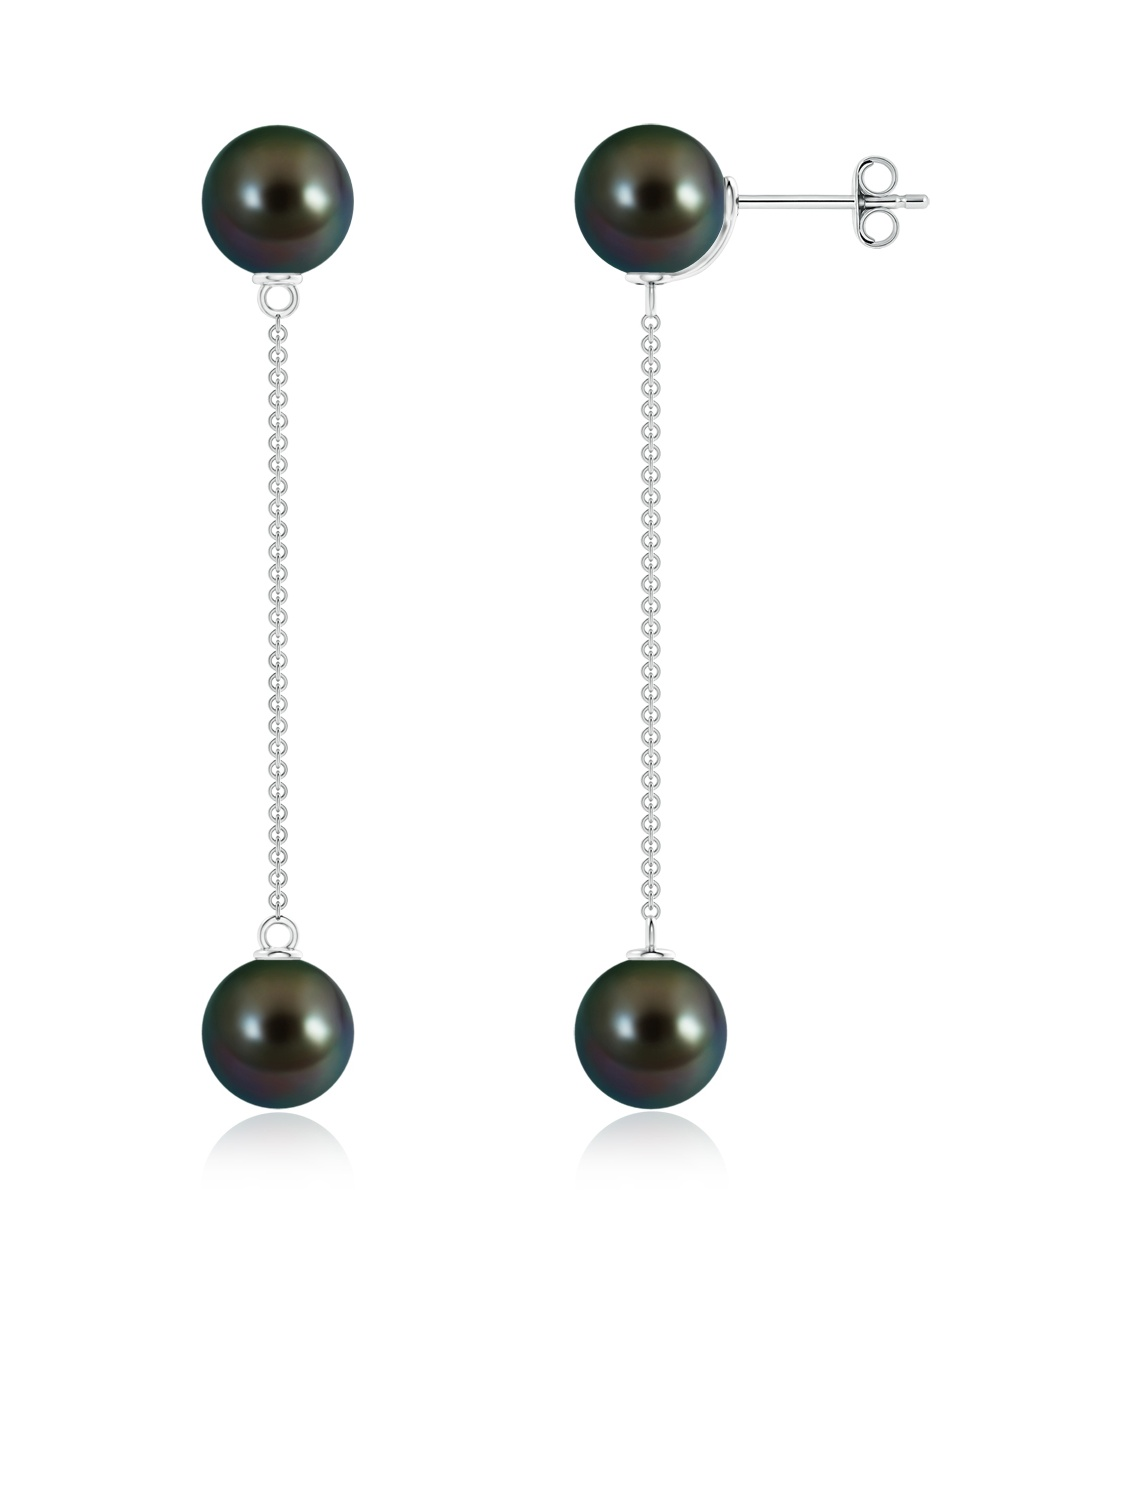 June Birthstone Earrings Tahitian Cultured Pearl Long Chain Drop Earrings in .925 Sterling Silver SE1539THPR-SL-AAAA-8 by Angara.com